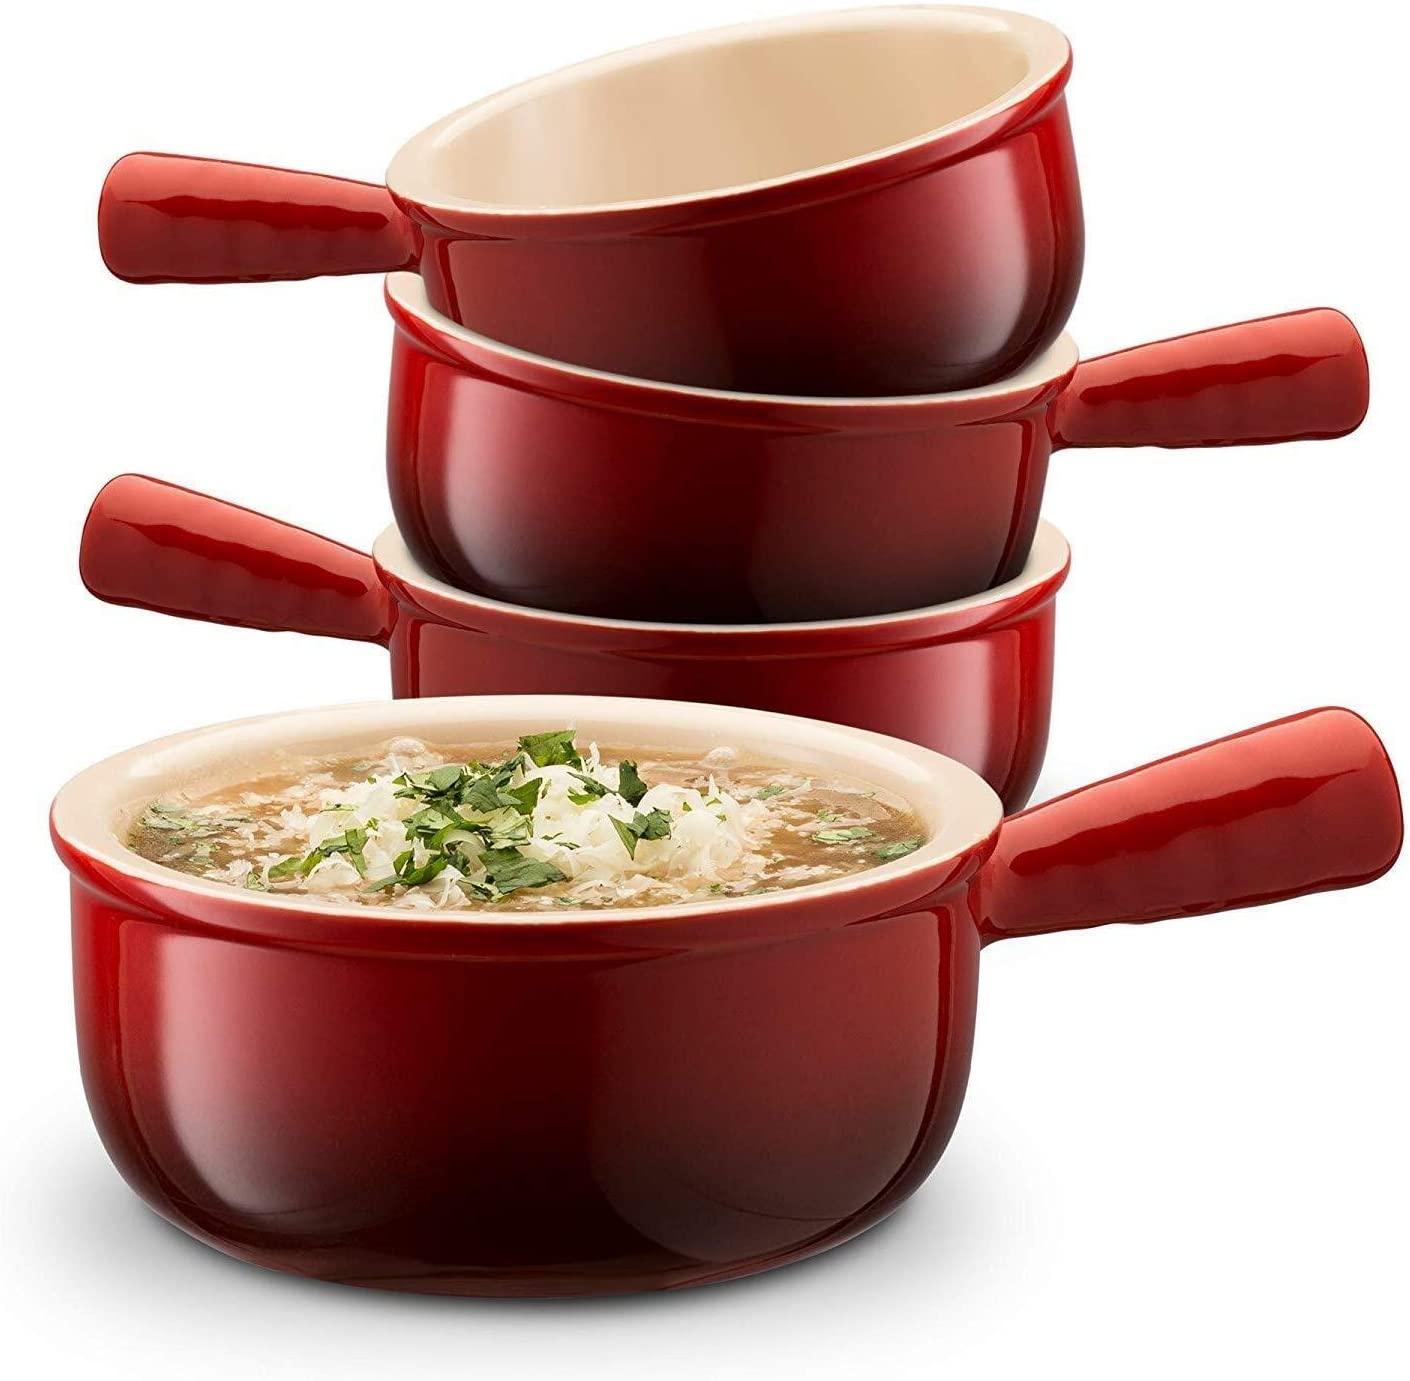 Set of 4 Hotel tableware home noodles boiled fish soup bowl 12 Ounce Bowl Ceramic French Onion Soup Bowls with Handles